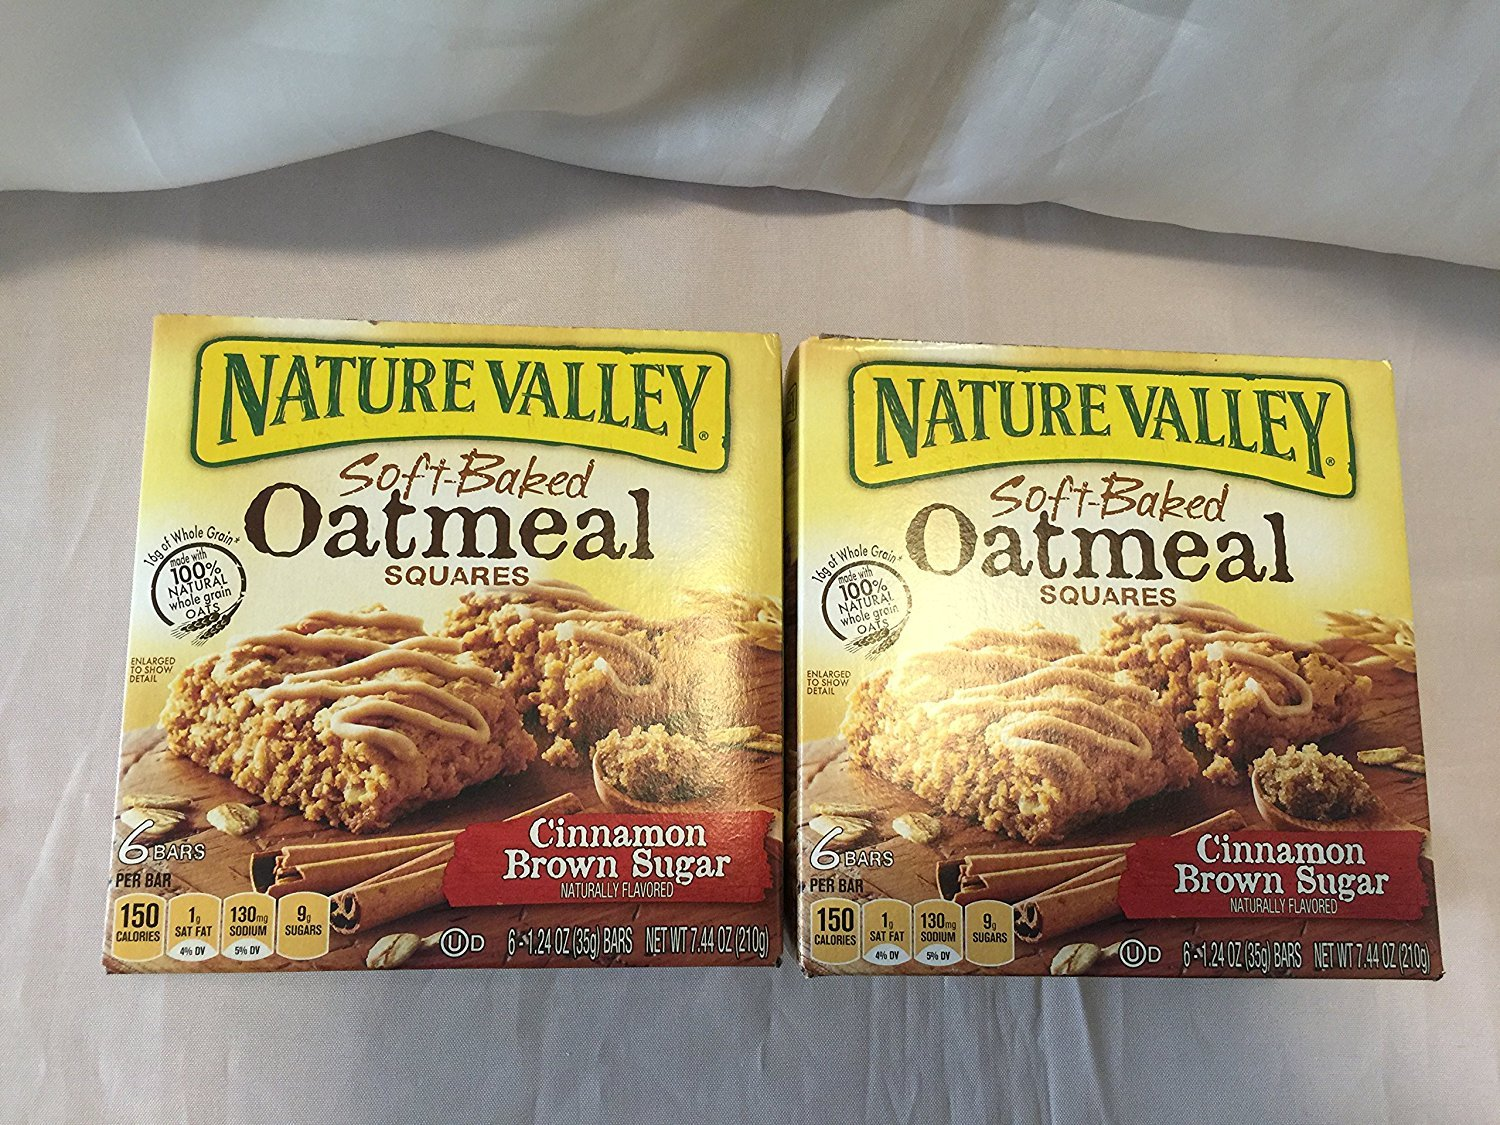 Nature Valley, Soft-Baked Oatmeal Squares, Cinnamon Brown Sugar, 7.44oz Box (...